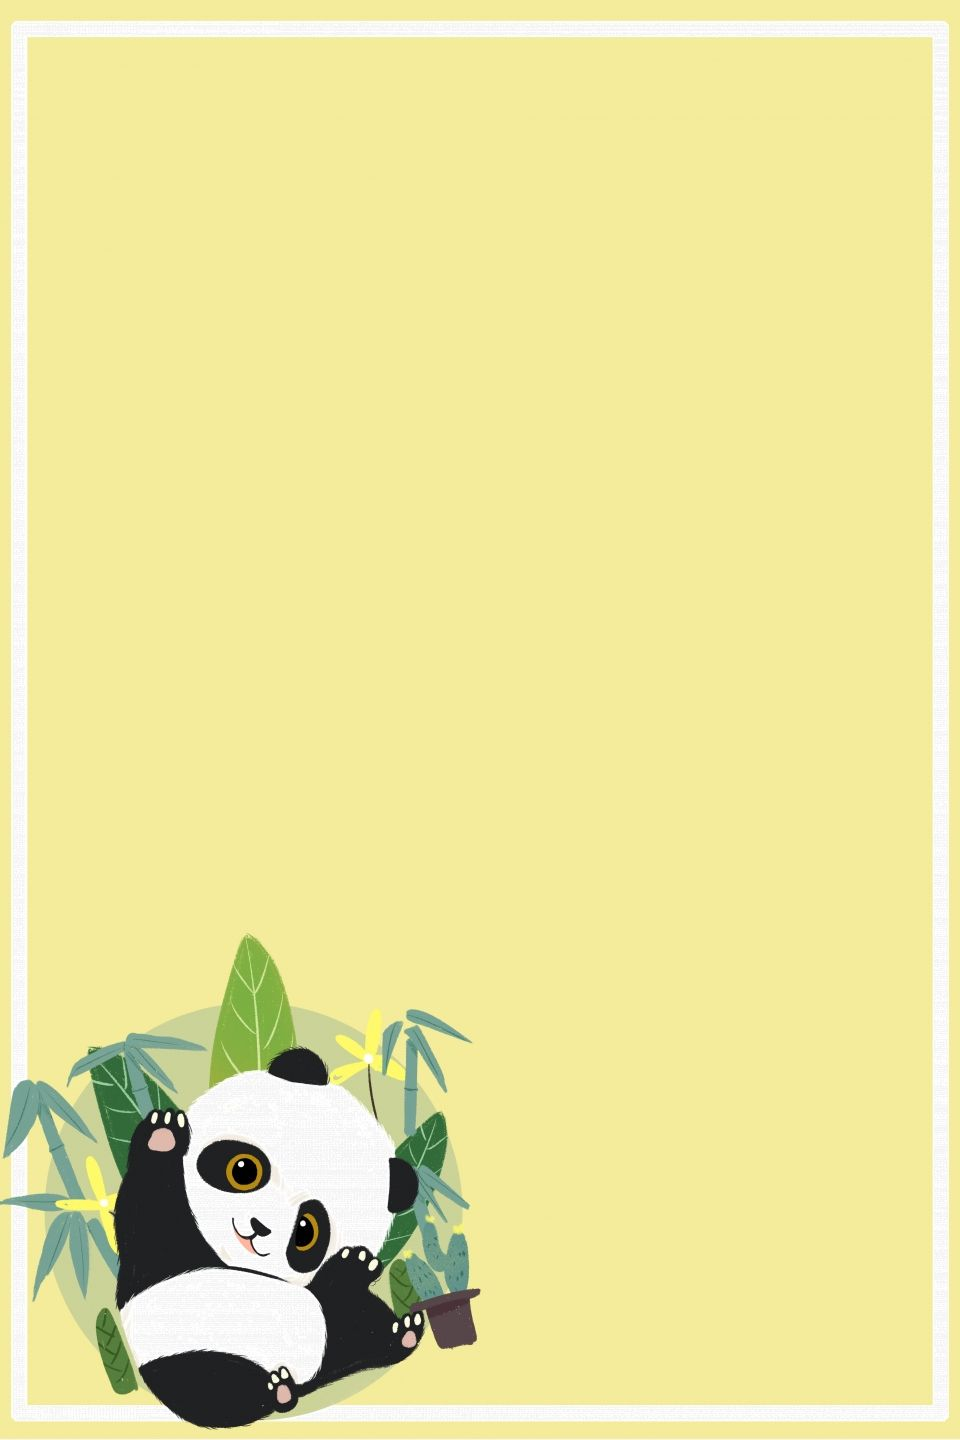 Cute Children S Solid Color Panda Background Border Panda Background Cute Panda Wallpaper Panda Wallpapers